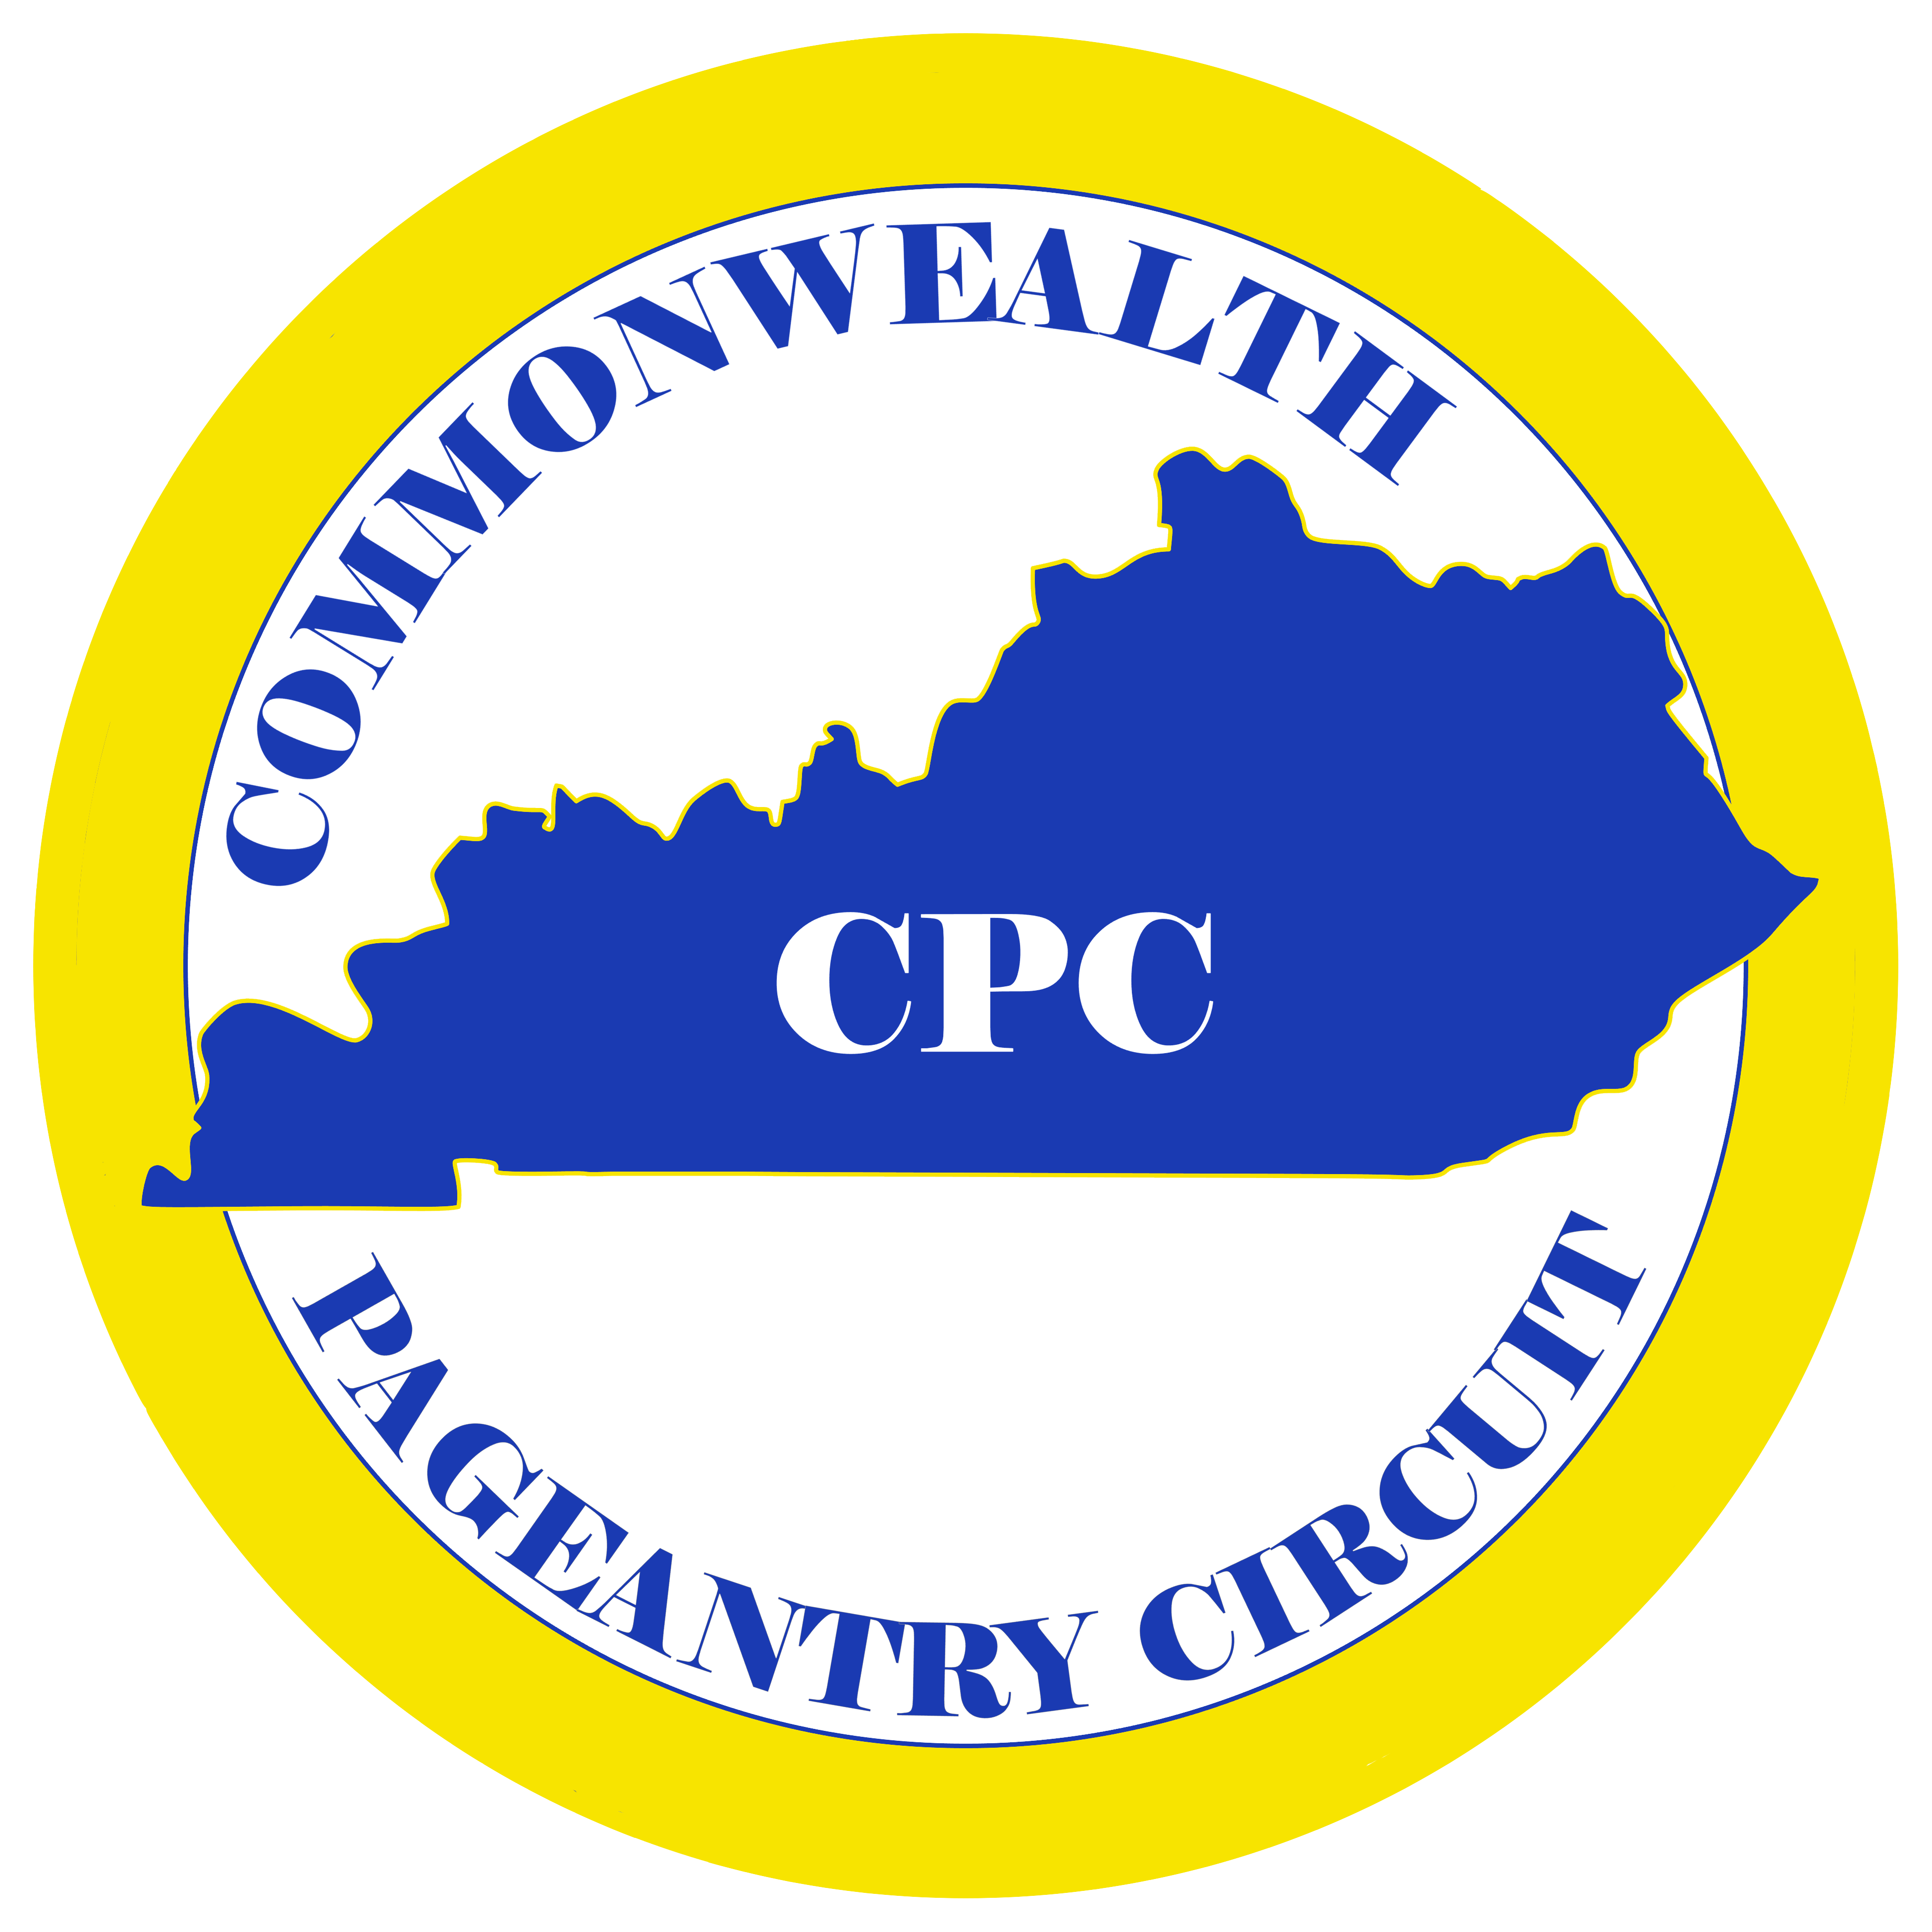 Commonwealth Pageantry Circuit